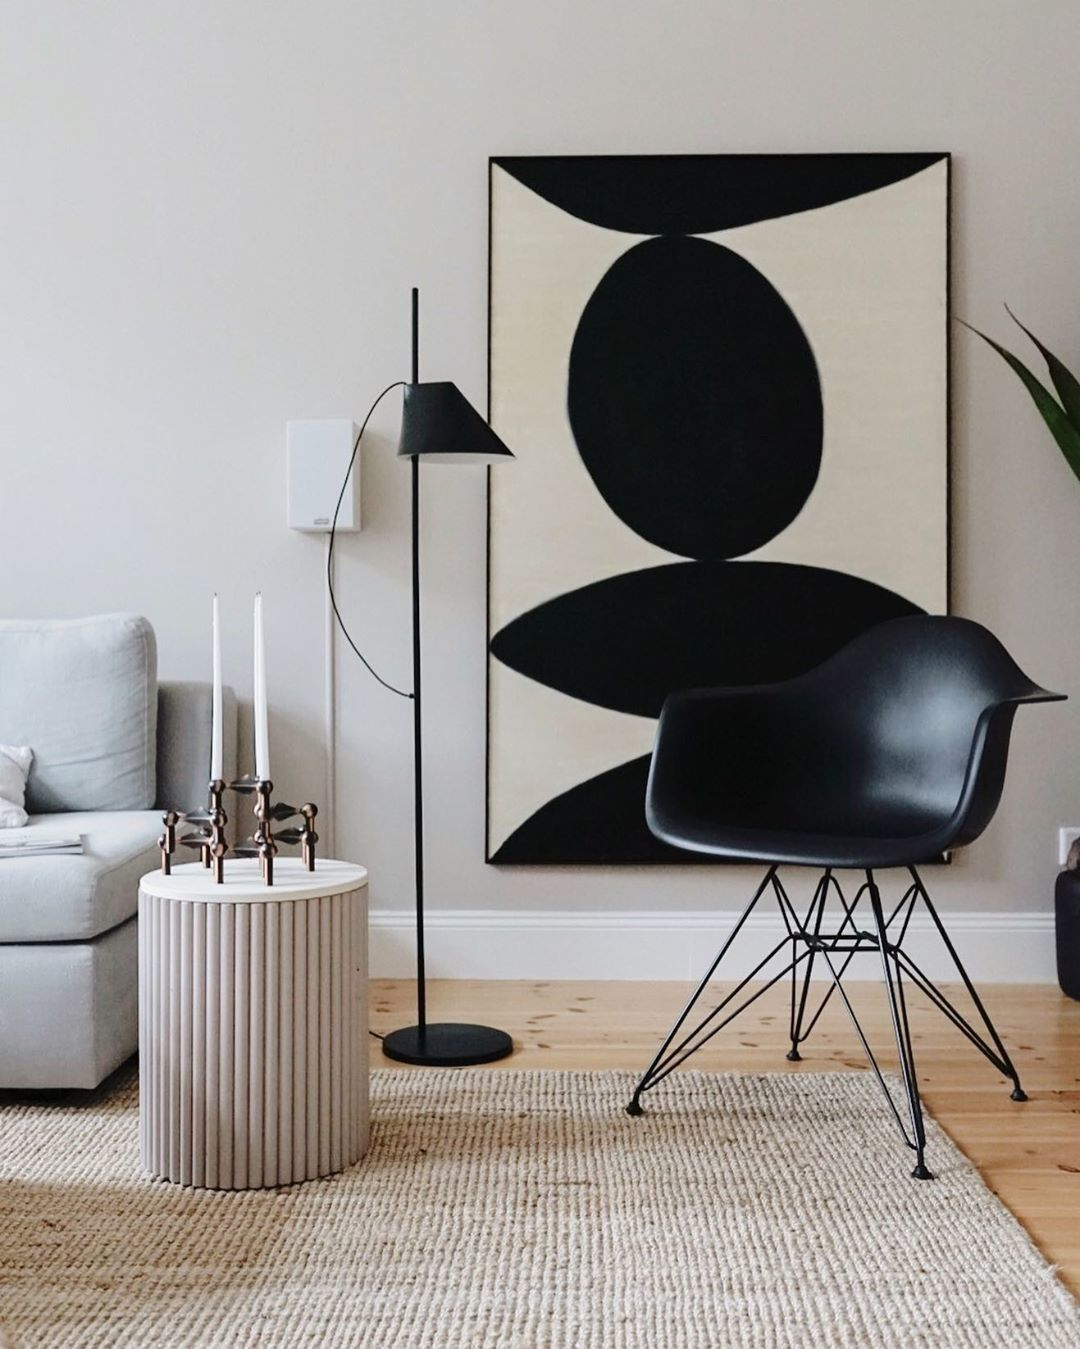 Interior trends: Fluted furniture and surfaces to add texture